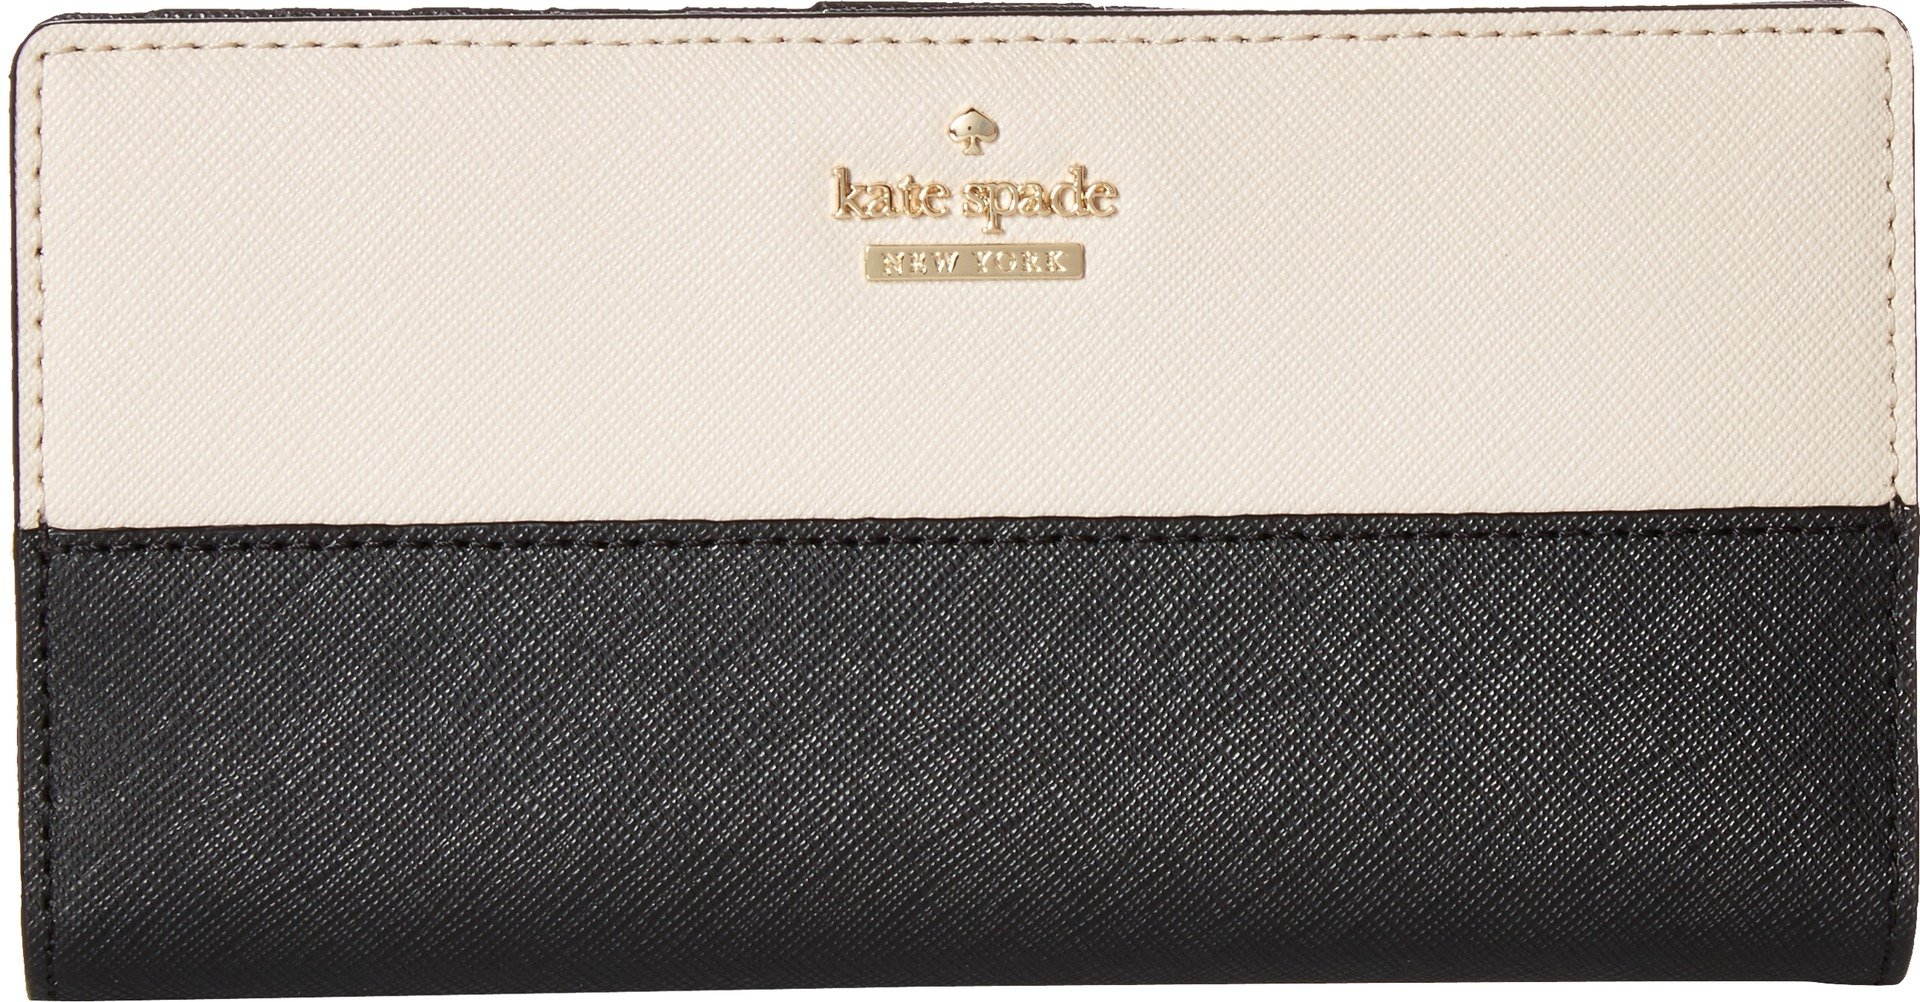 Kate Spade New York Women's Cameron Street Stacy Black/Tusk One Size